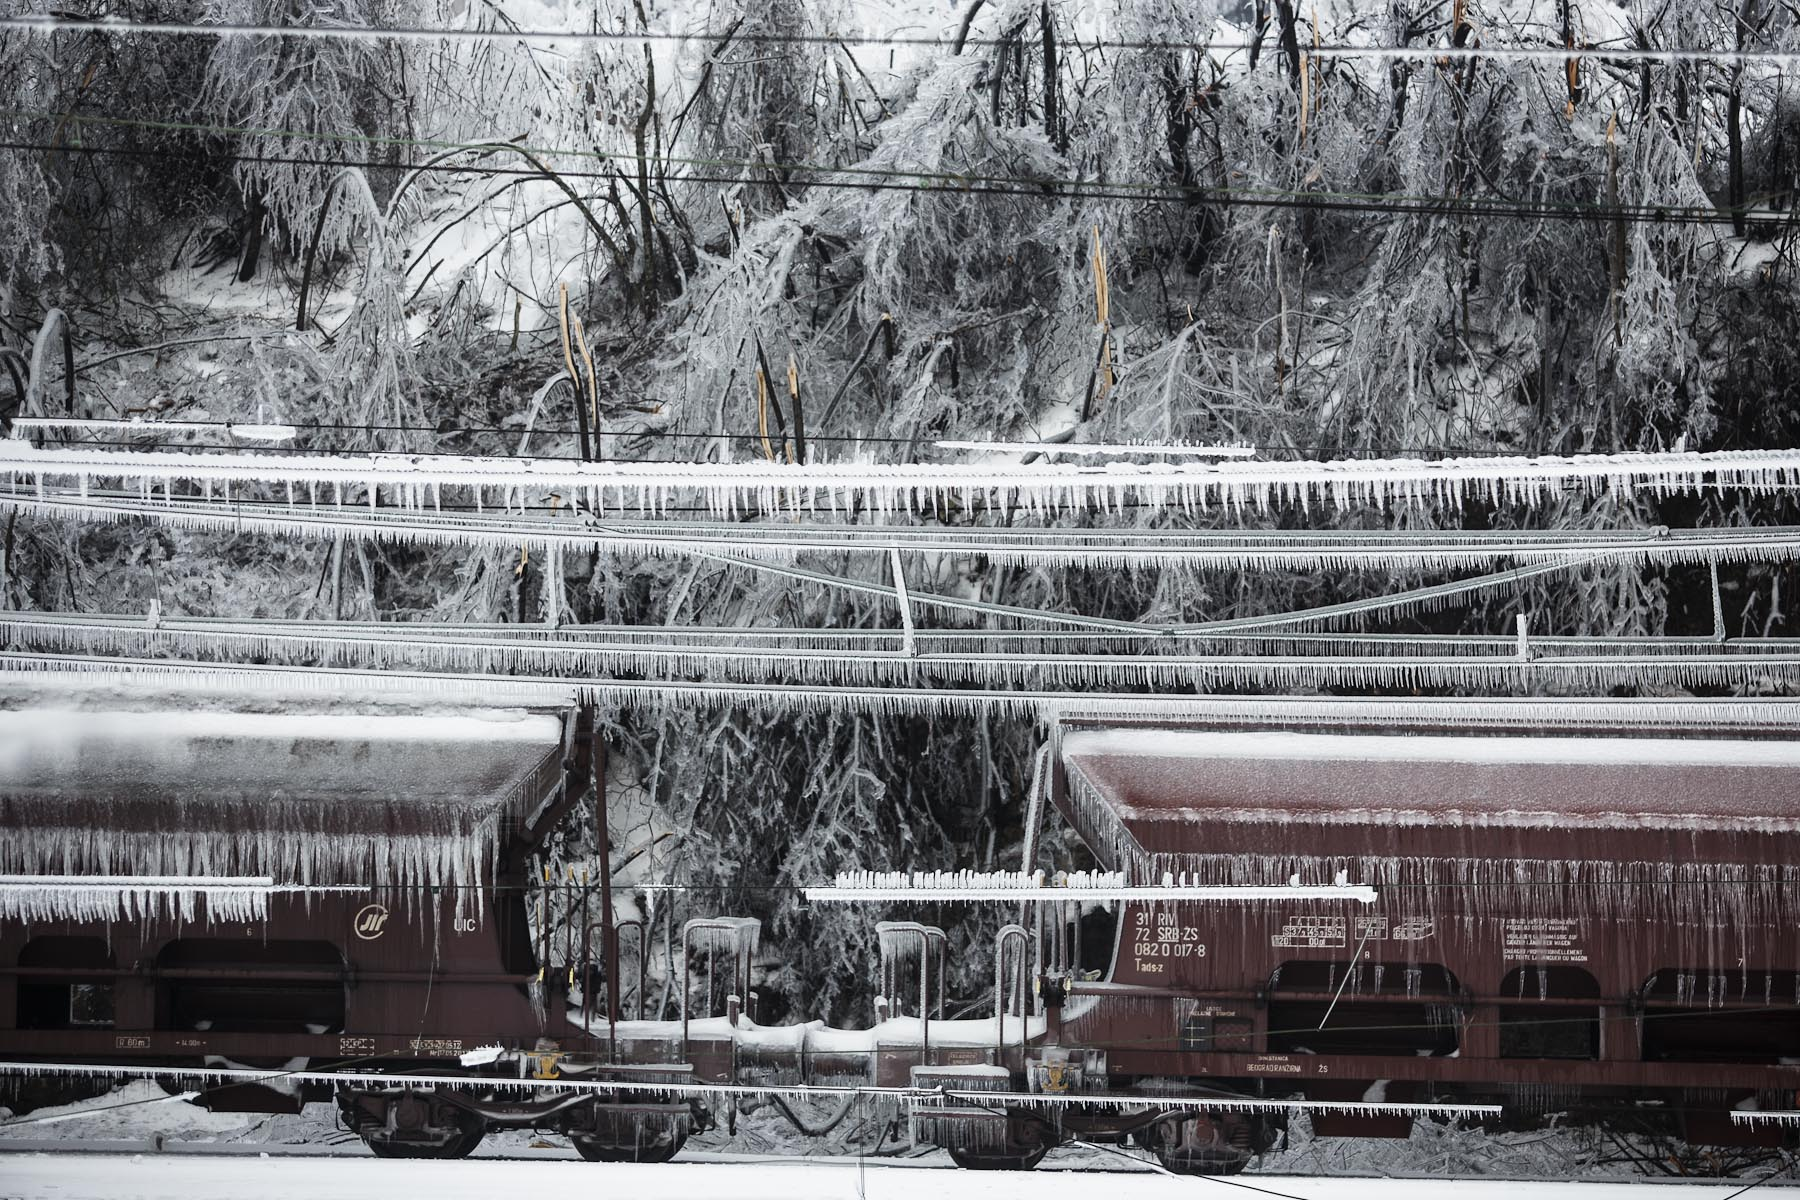 Train cars are seen covered in ice among broken trees and frozen powerlines in Postojna, Slovenia, February 5 2014.